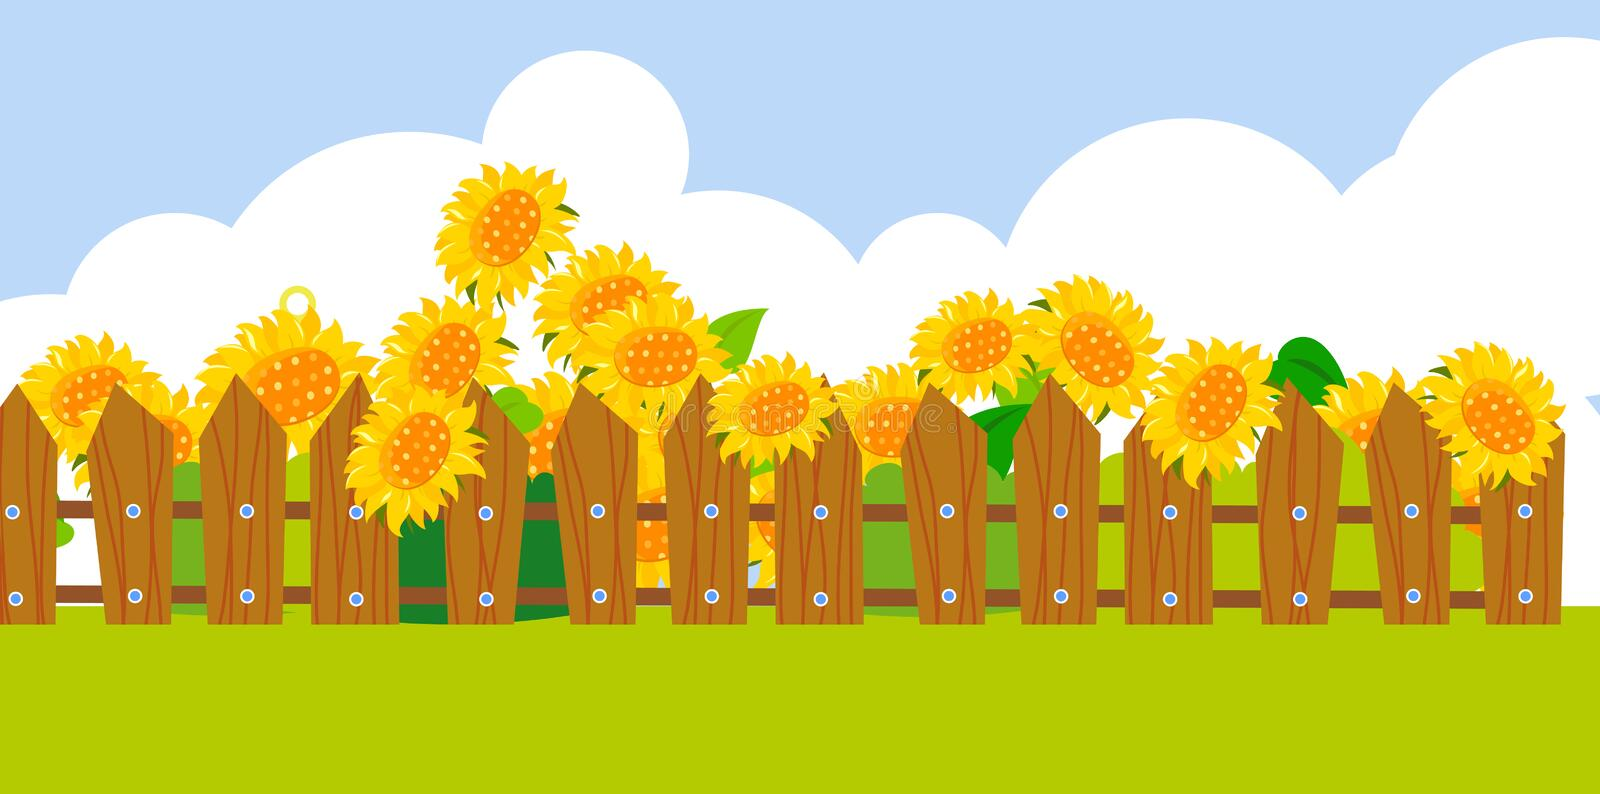 Download Sunflower background stock vector. Image of agriculture - 38423949